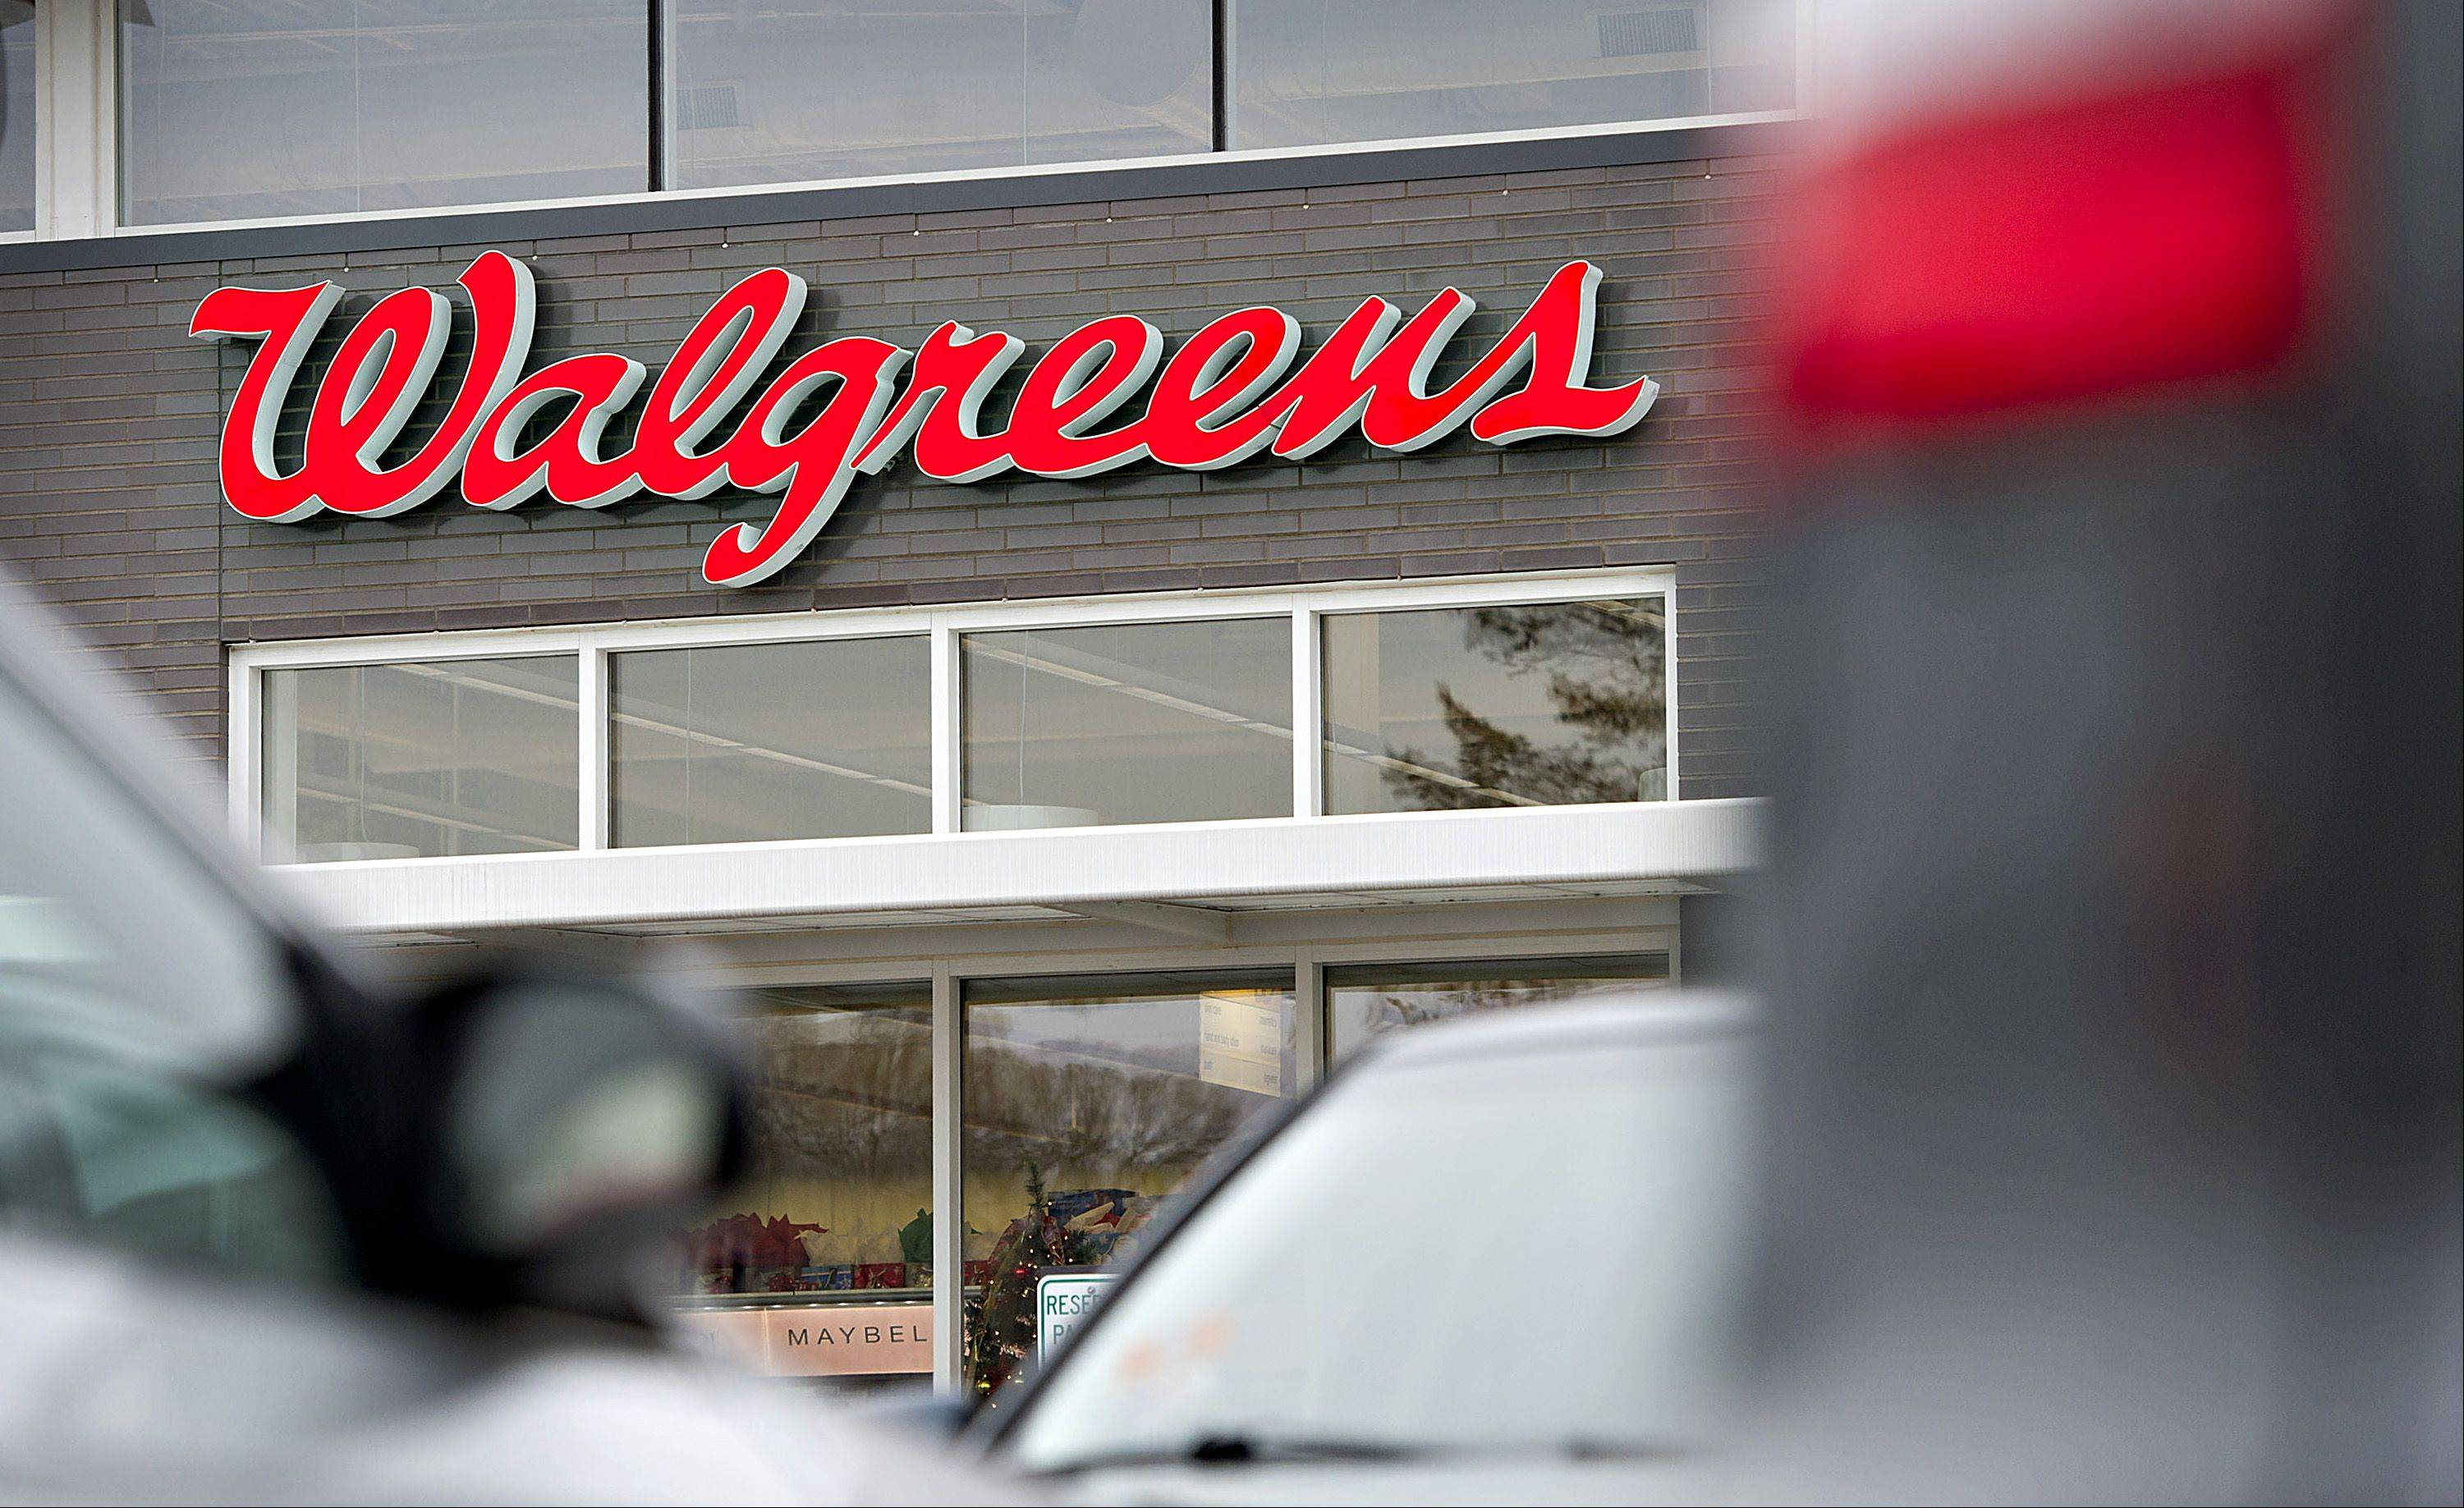 Walgreens announced that it was rolling out a prepaid debit card at all of its 8,541 locations, including Duane Reade stores, by the end of the year. And not just a run-of-the-mill rechargeable piece of plastic: This one will be able to make online bill payments, cash checks and directly deposit paychecks. It's only $2.95 to join, and ATM withdrawals will be free at machines inside the store, with a $2.95 fee for those outside. For people without a bank account — and there were 10 million of them as of 2011 — dropping into a Walgreens could become the easiest way to manage their finances.